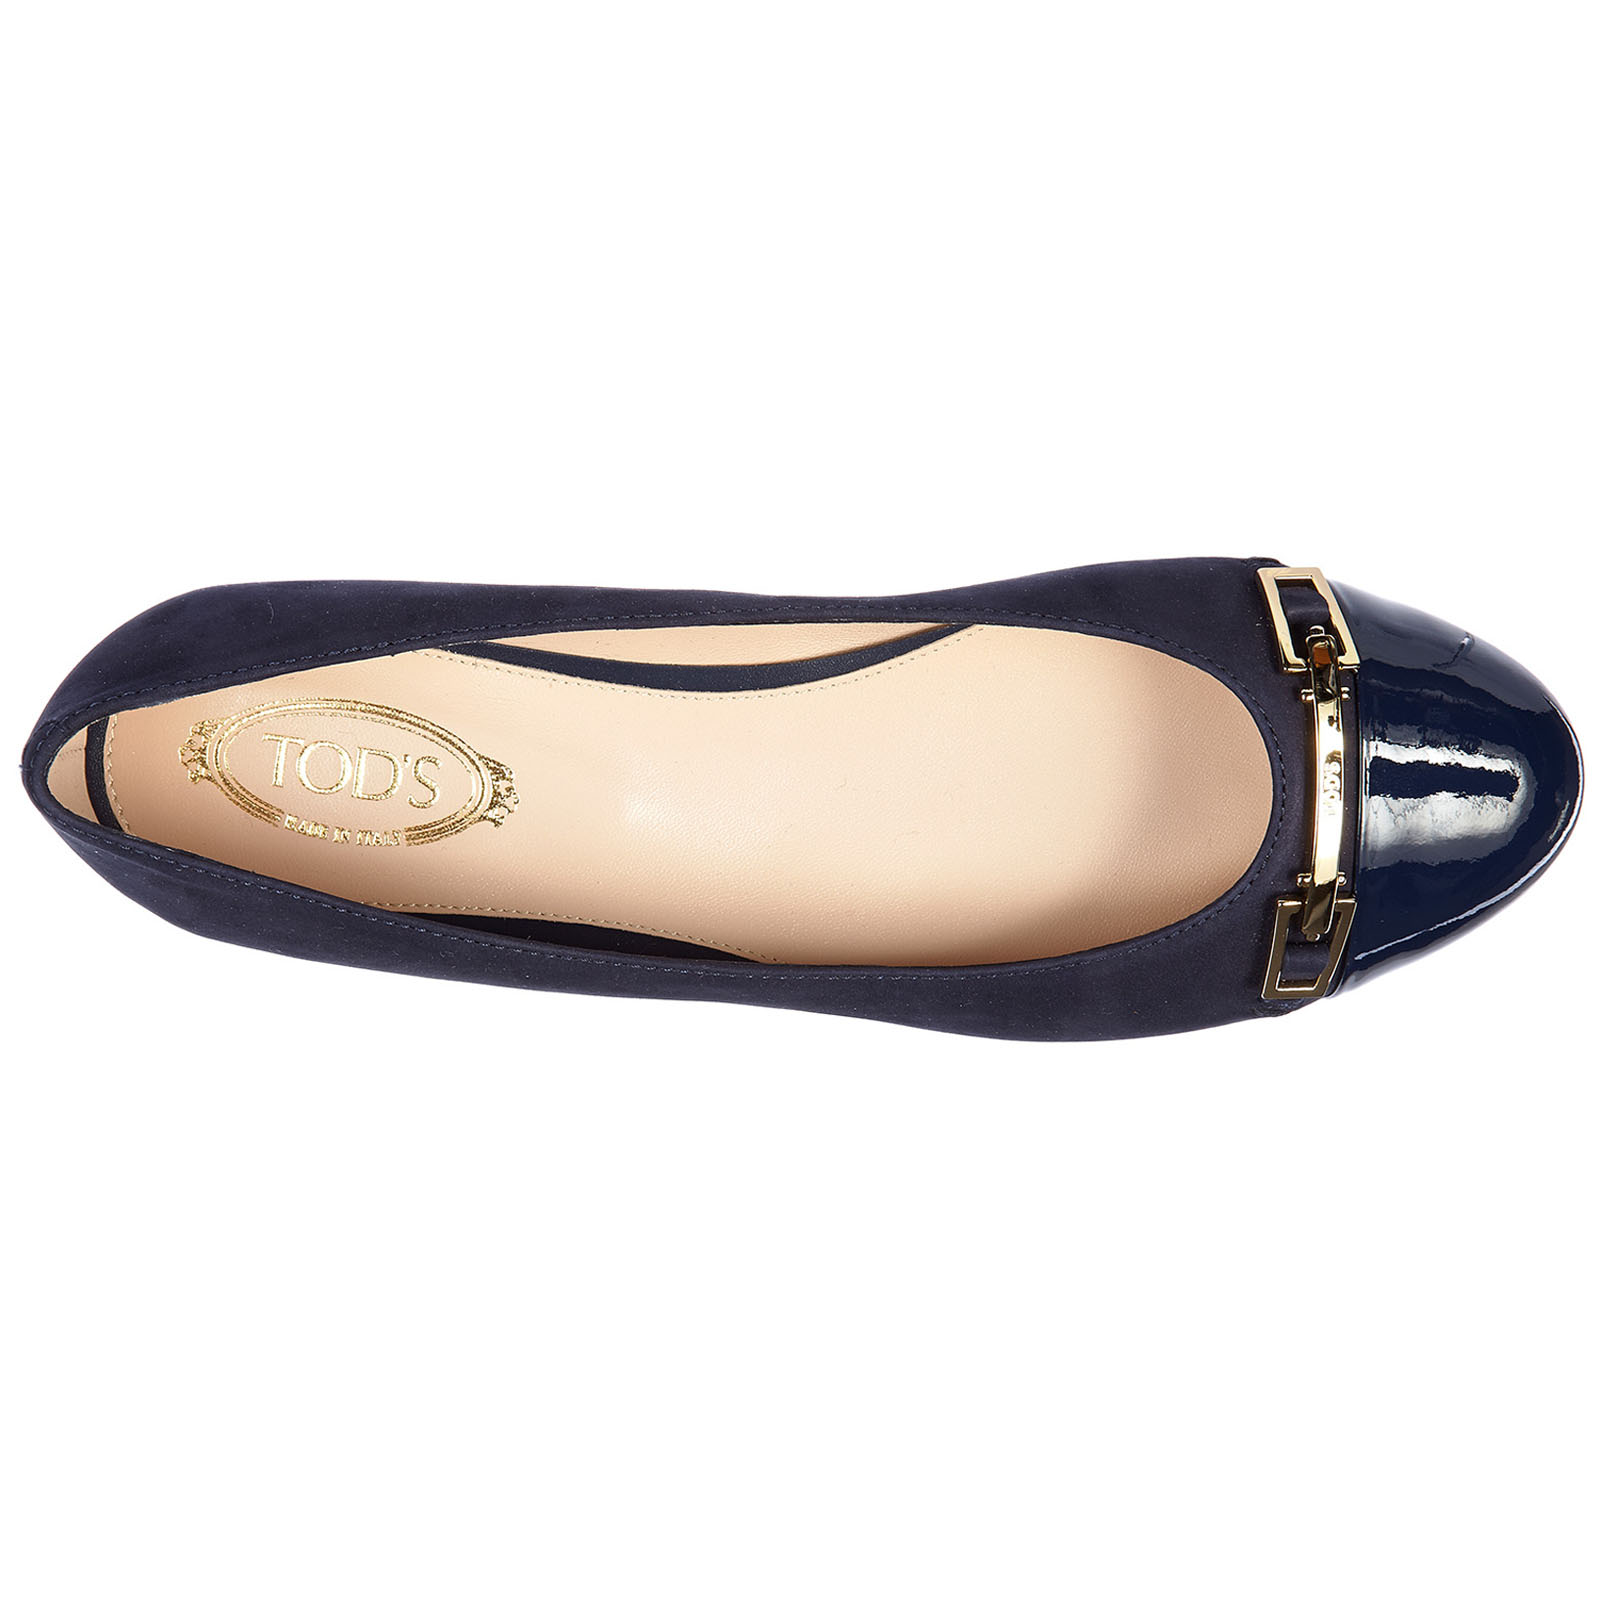 Women's leather ballet flats ballerinas  accessiorio clamp